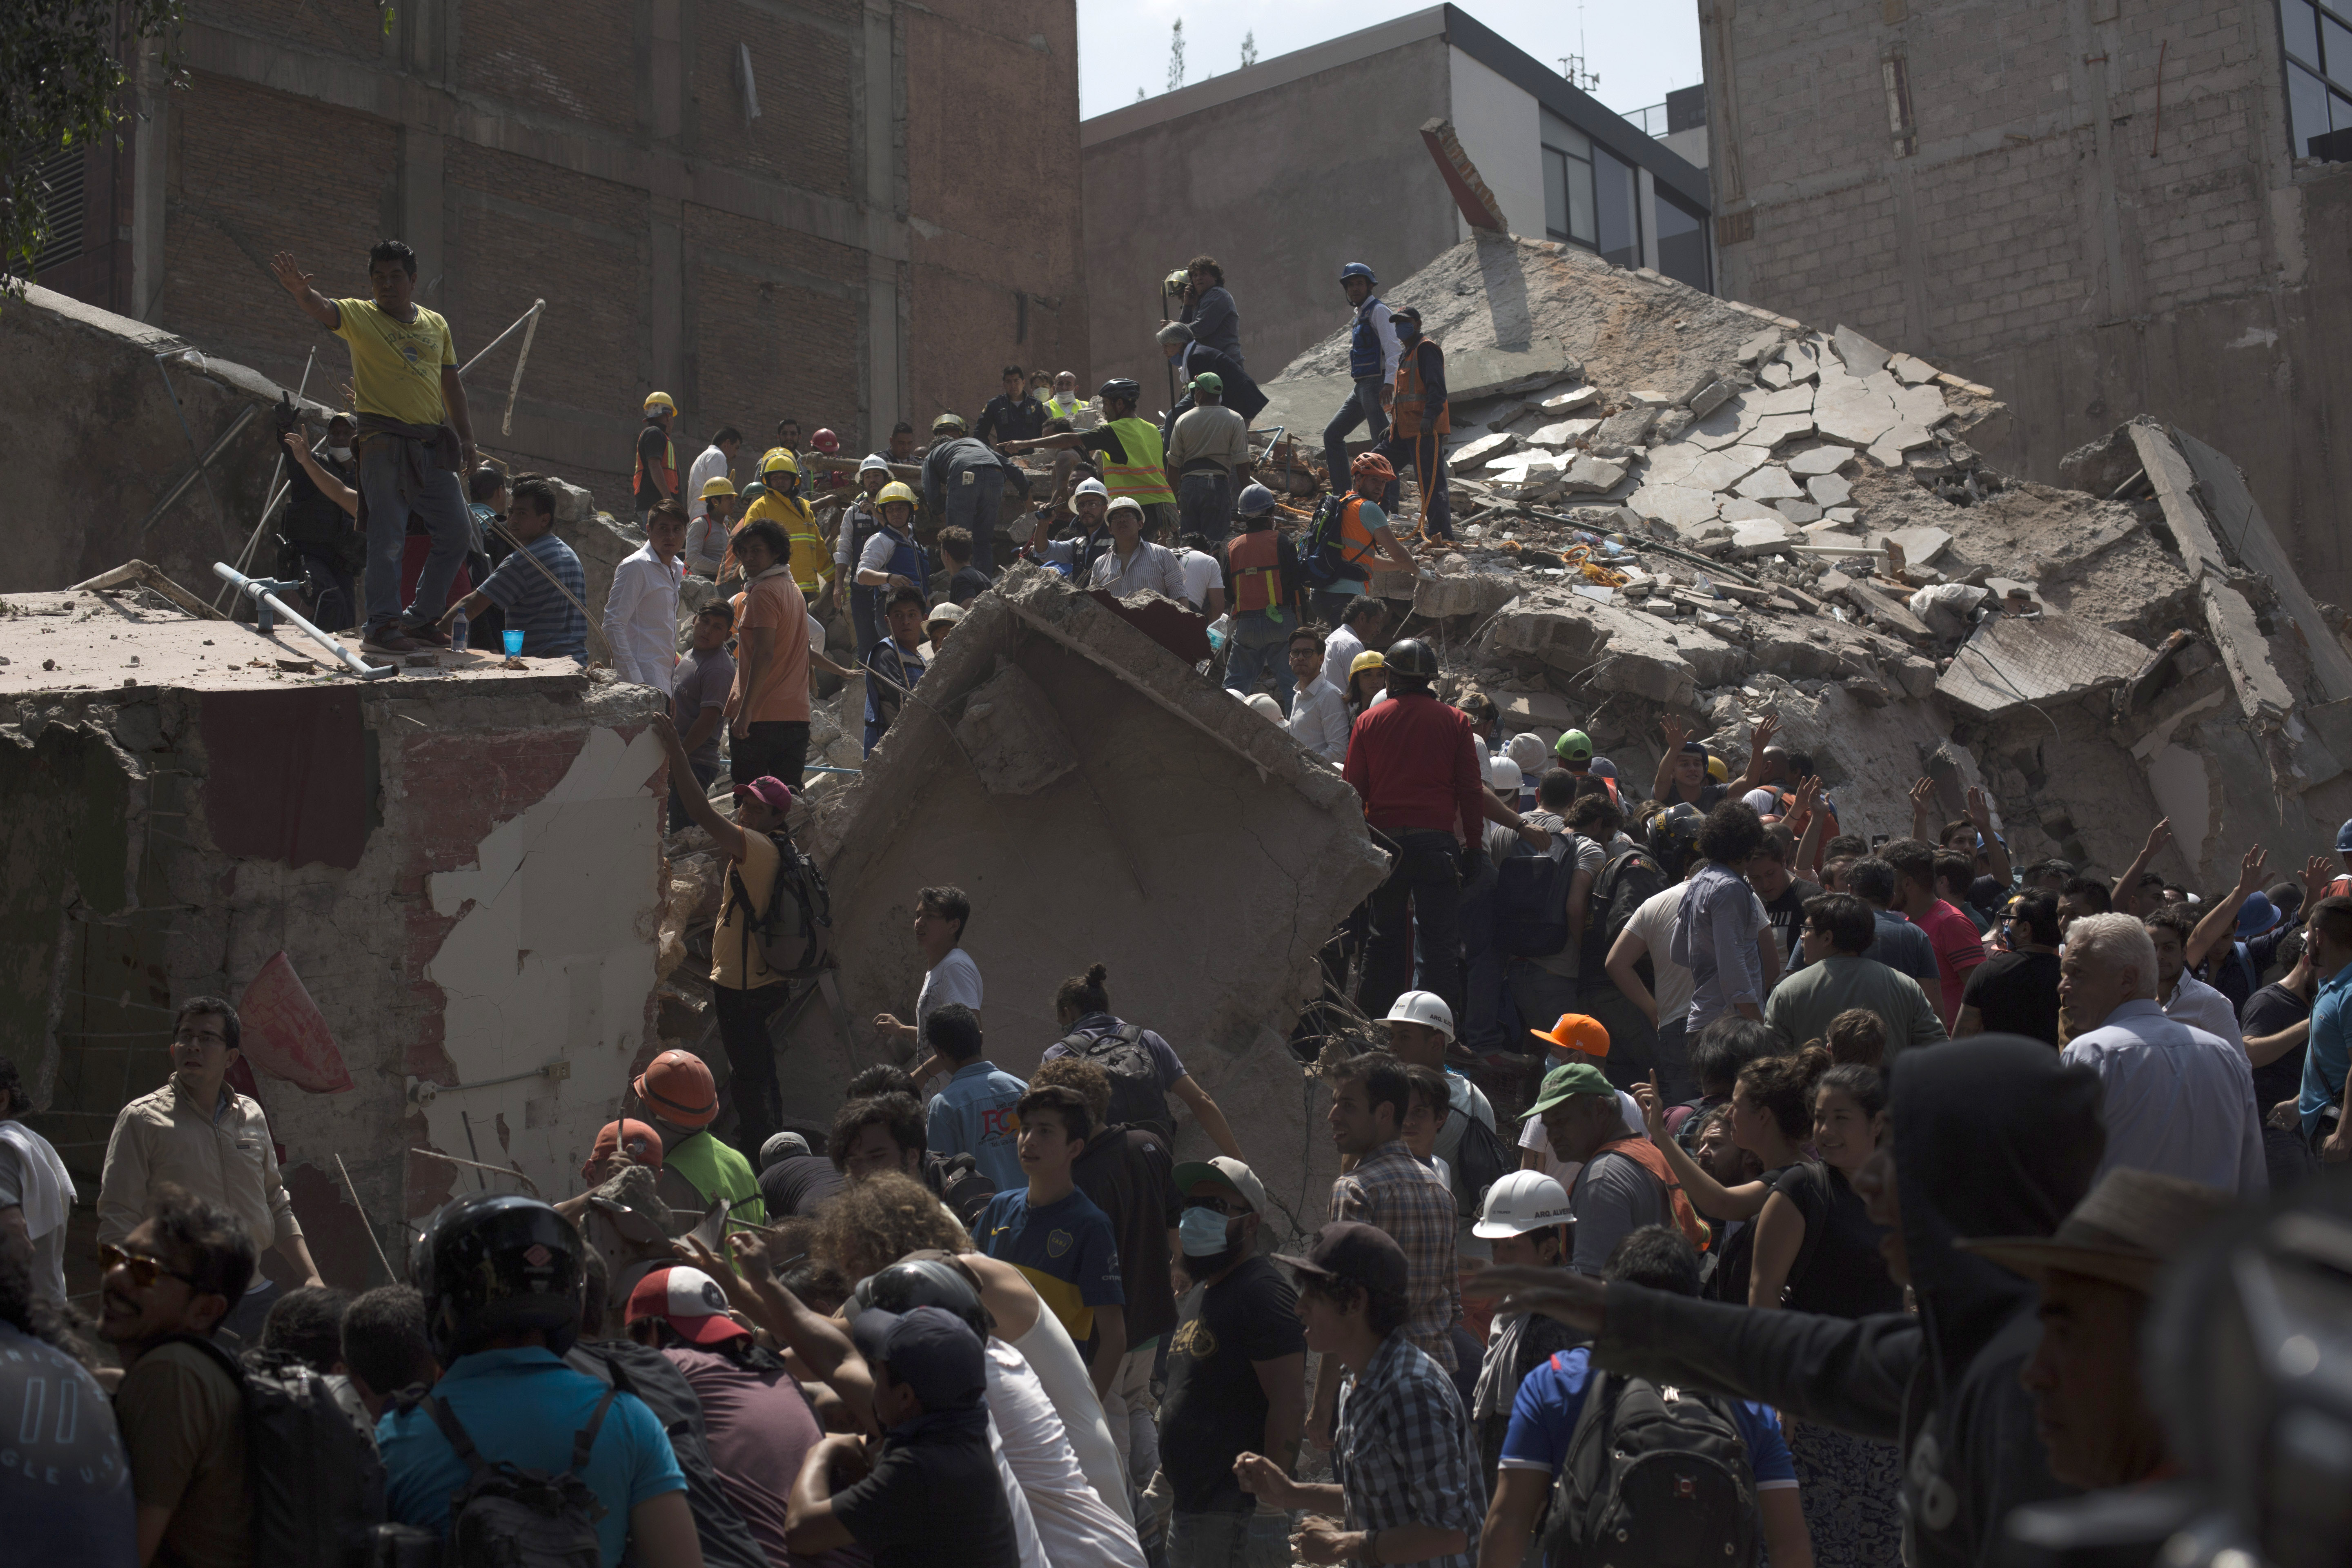 Rescuers work in the rubble after a magnitude 7.1 earthquake struck on September 19, 2017 in Mexico City, killing over 100 people and causing massive damage.